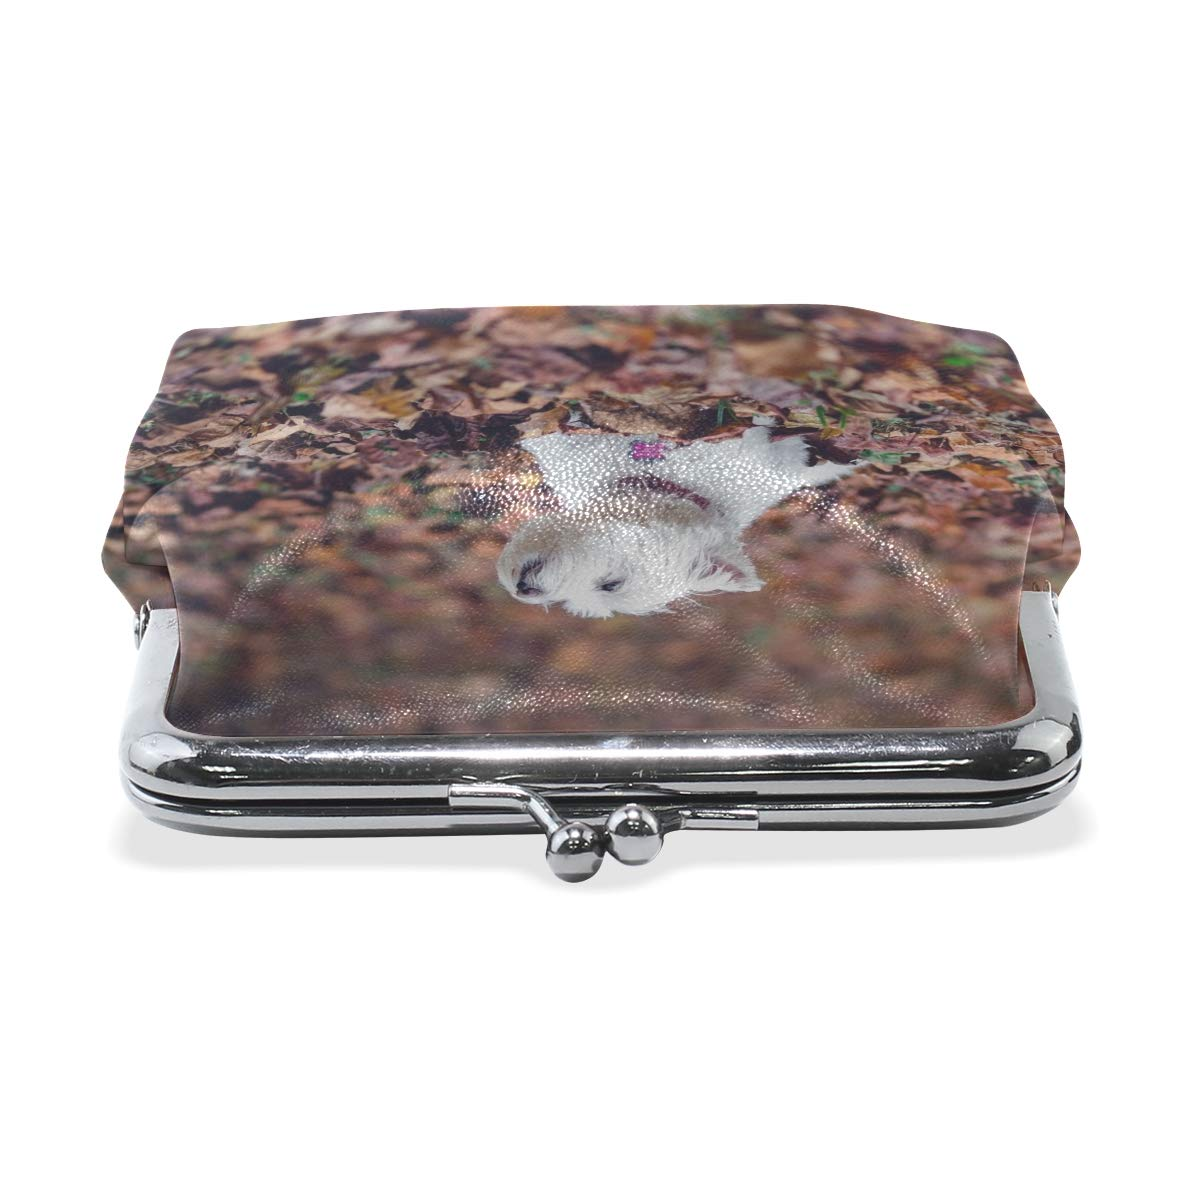 Rh Studio Coin Purse Clasp Closure Dogs Leaves Fall Down Terrier Print Wallet Exquisite Coin Pouch Girls Women Clutch Handbag Exquisite Gift